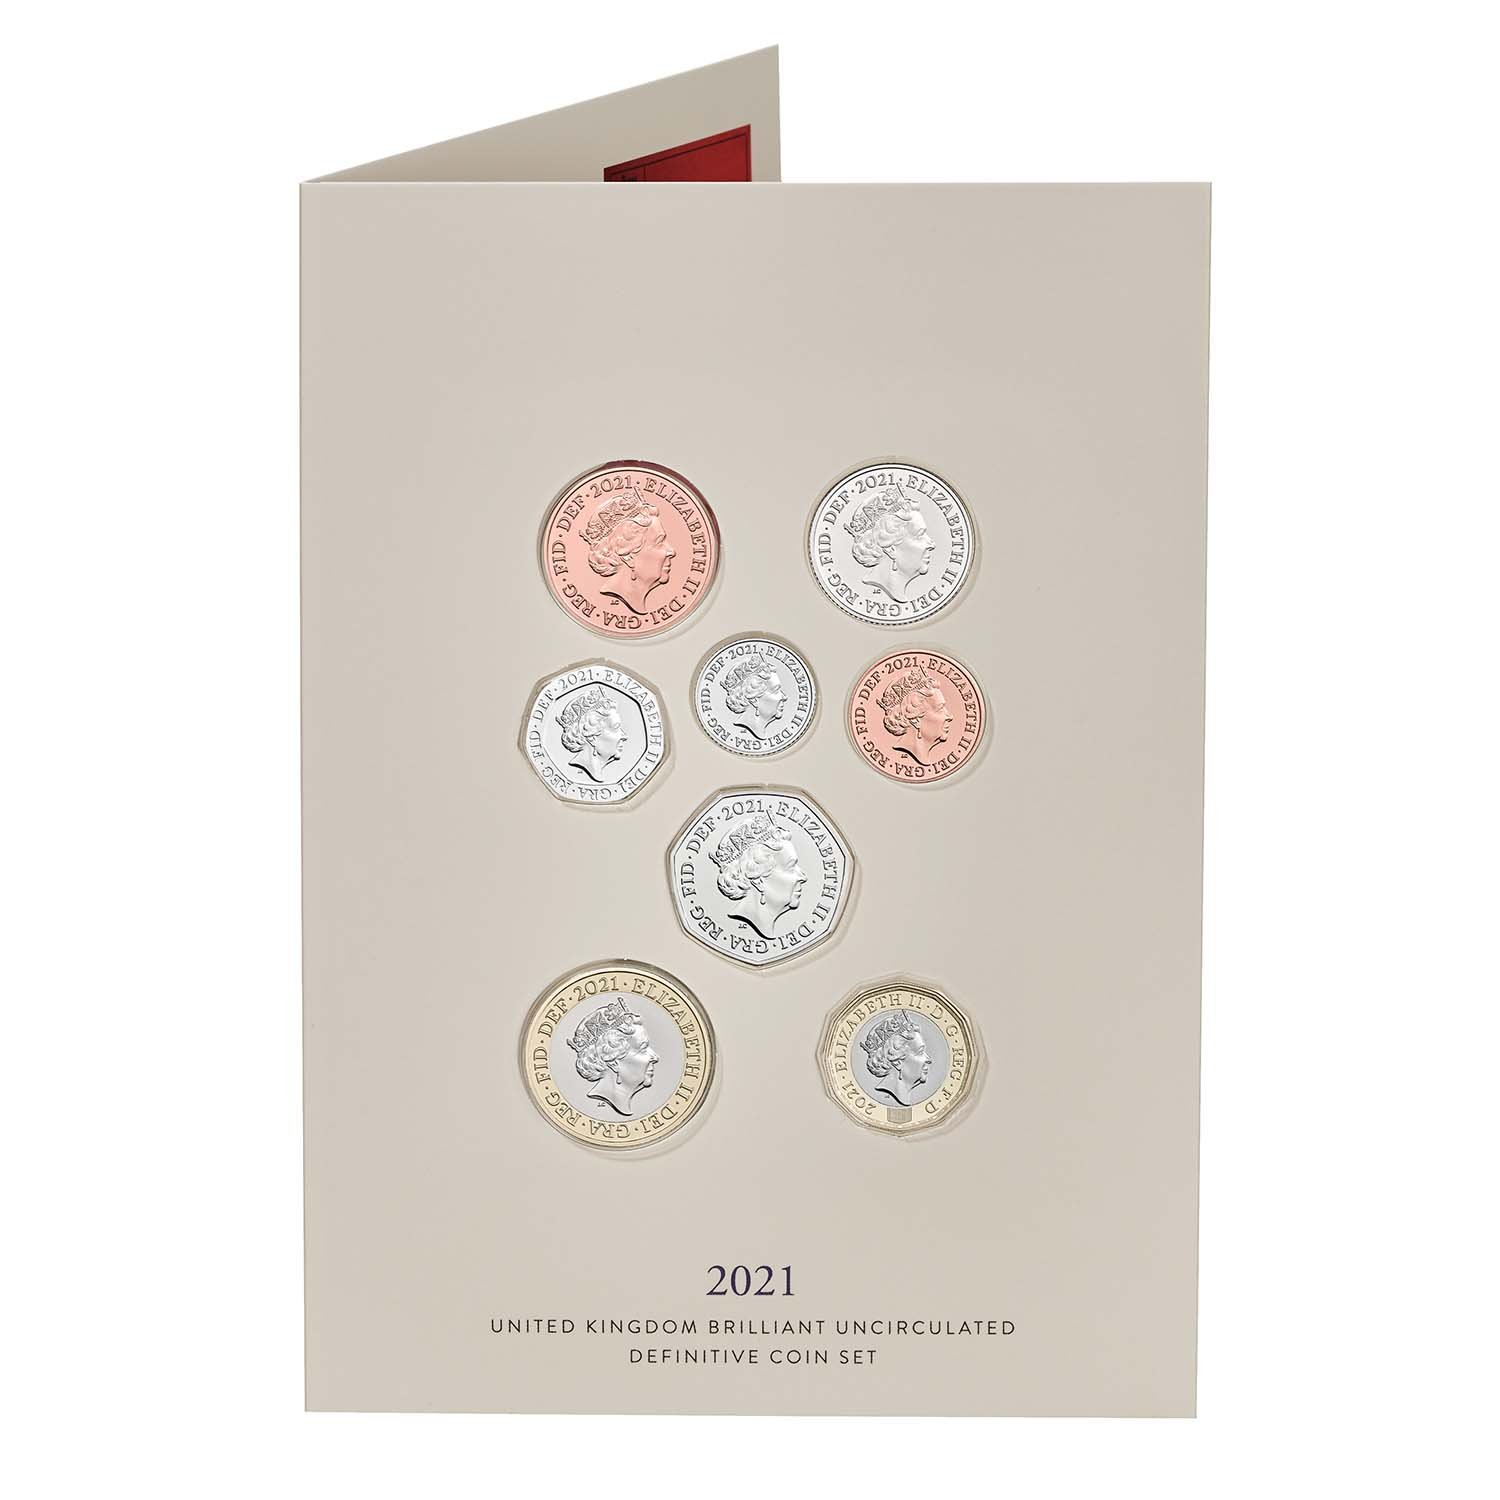 2021 United Kingdom Brilliant Uncirculated Definitive Coin Set